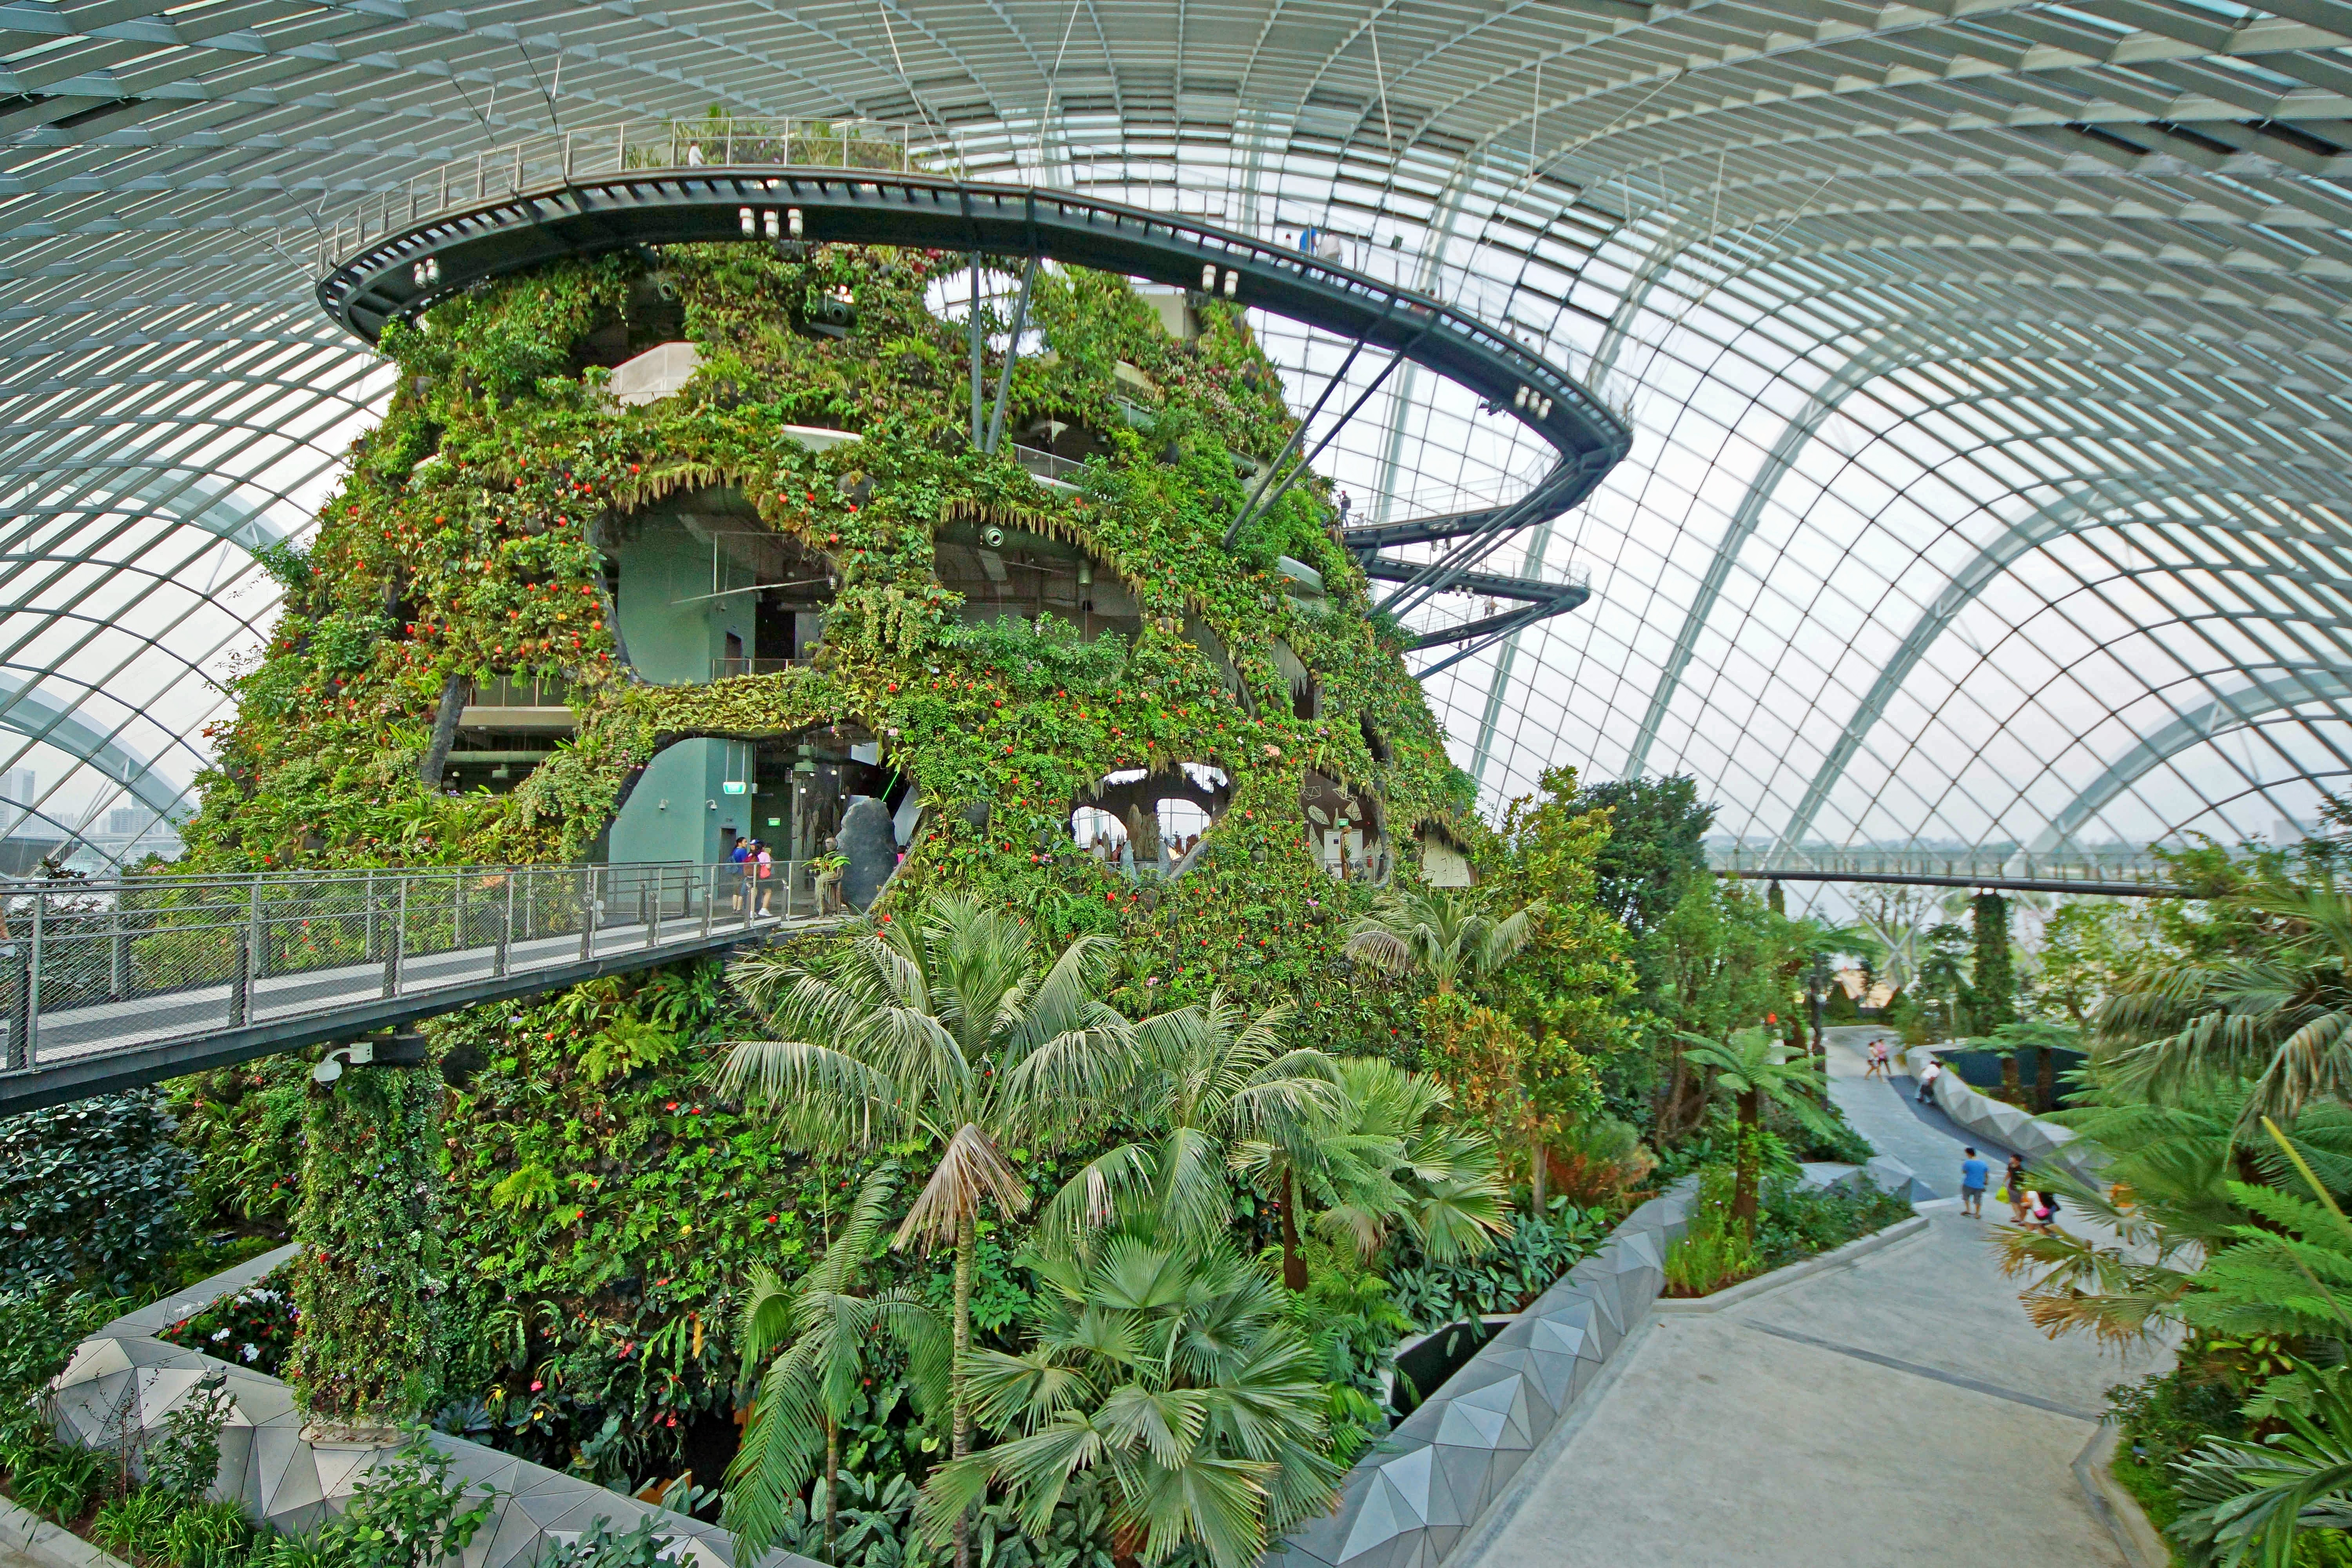 1465885864_cloud_forest__gardens_by_the_bay__singapore_-_20120617-05.jpg